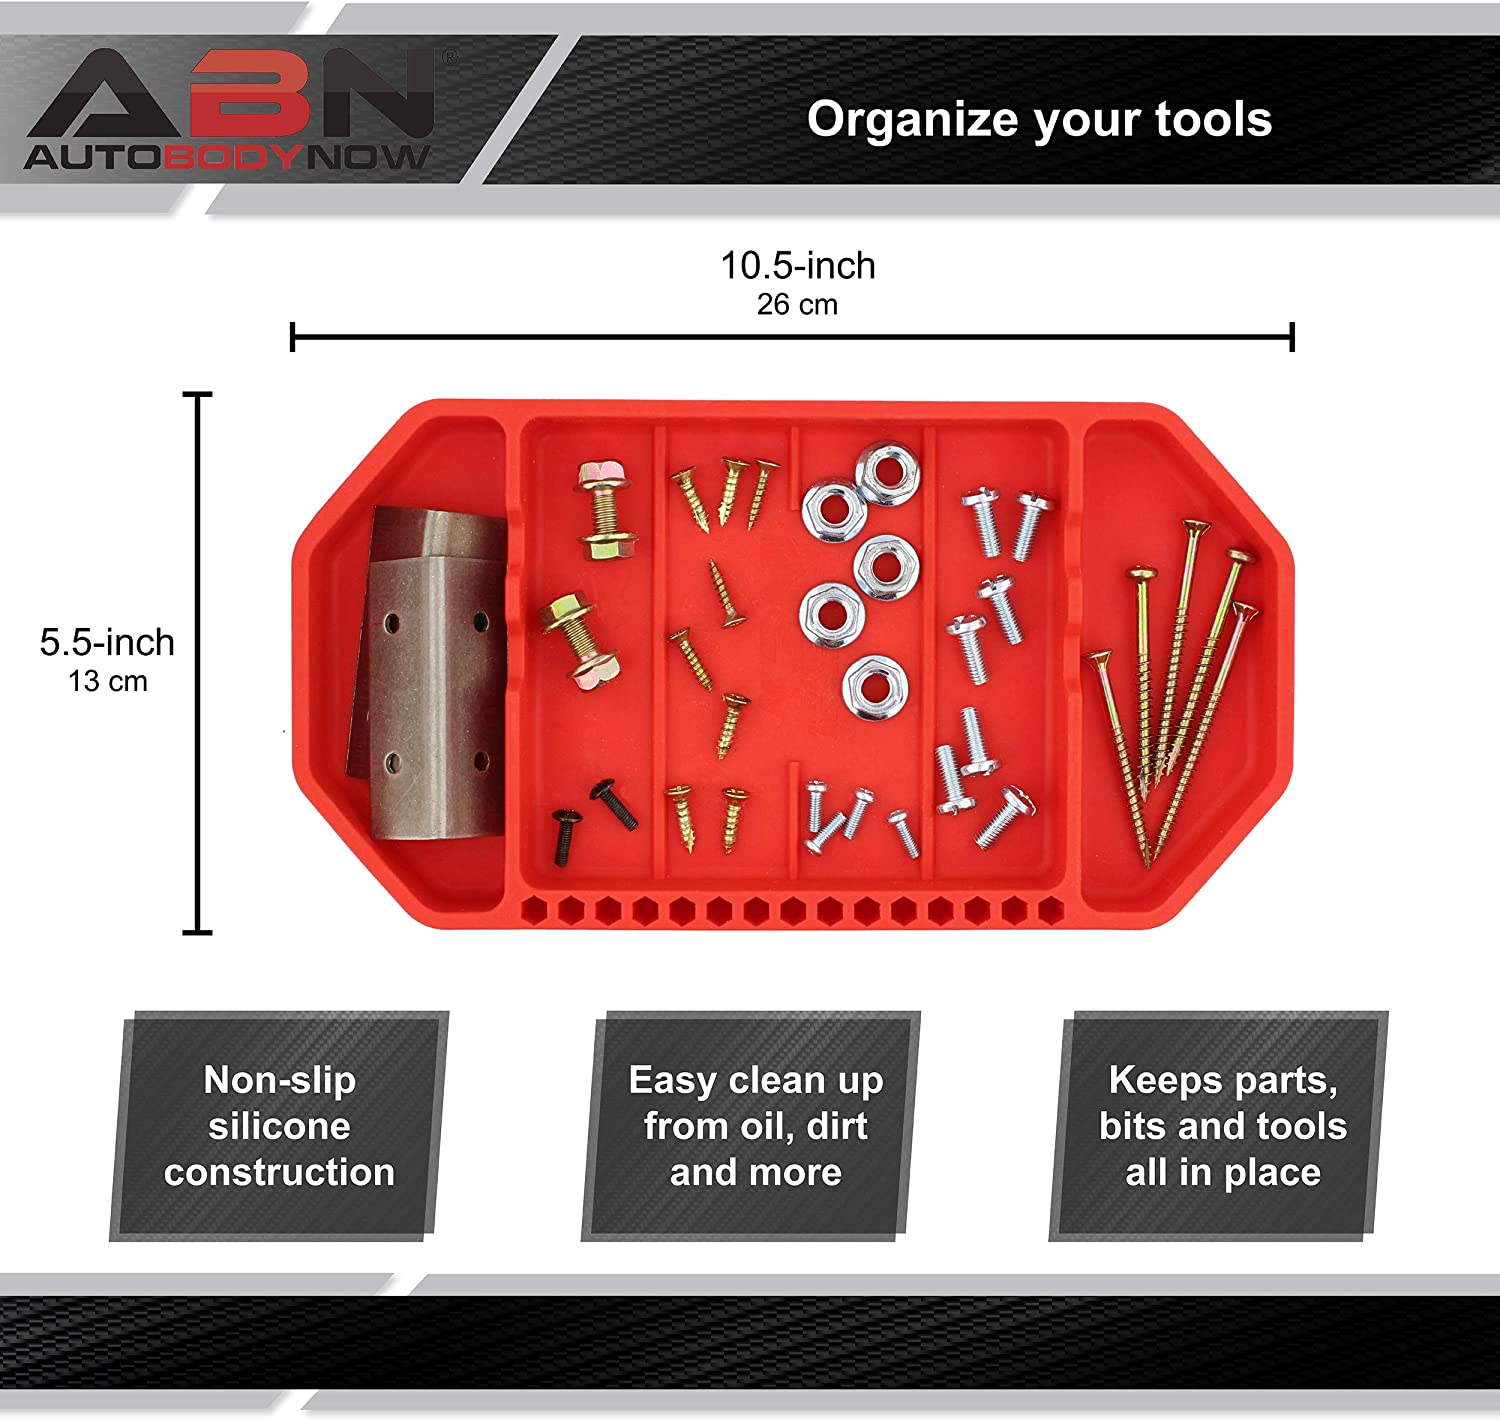 10.5in x 5.5in ABN Flexible Tool Tray Non Slip Tool Holder Tray for Organizing Parts Silicone Rubber Tools Organizer